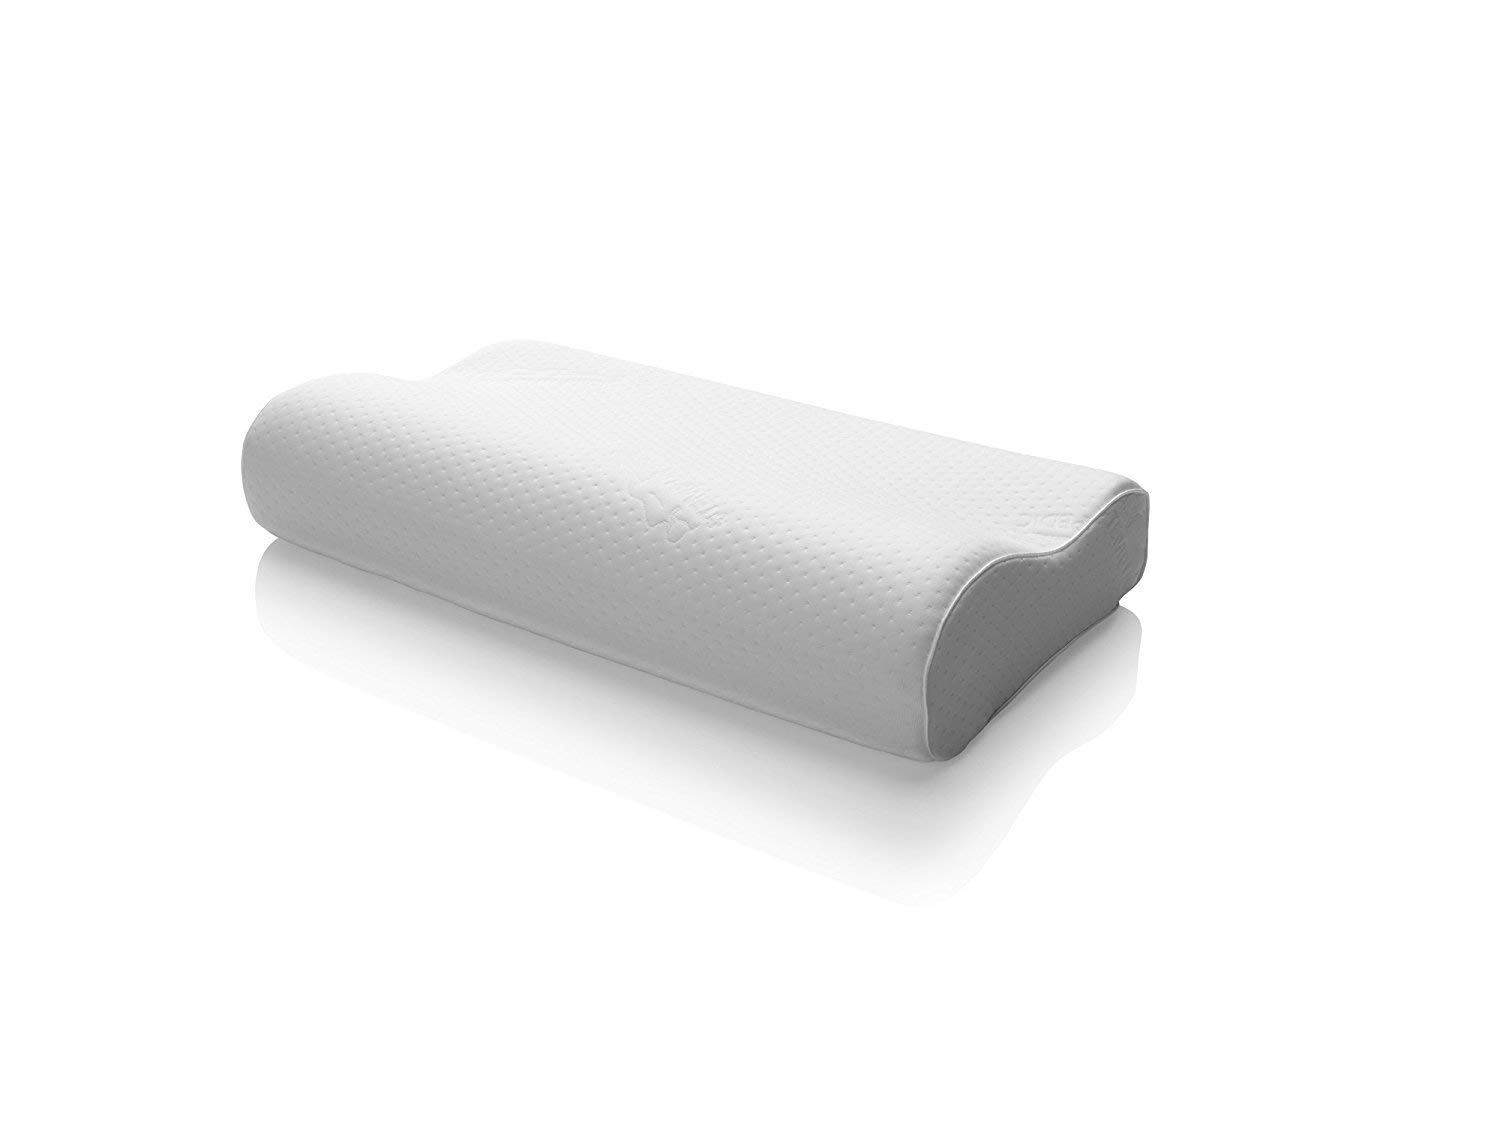 Tempur-Pedic TEMPUR-Ergo Neck Small Size Pillow, Firm Support, Adaptable Comfort & Relief Washable Cover, Assembled in the USA, 5 YR Warranty (Renewed) by Tempur-Pedic